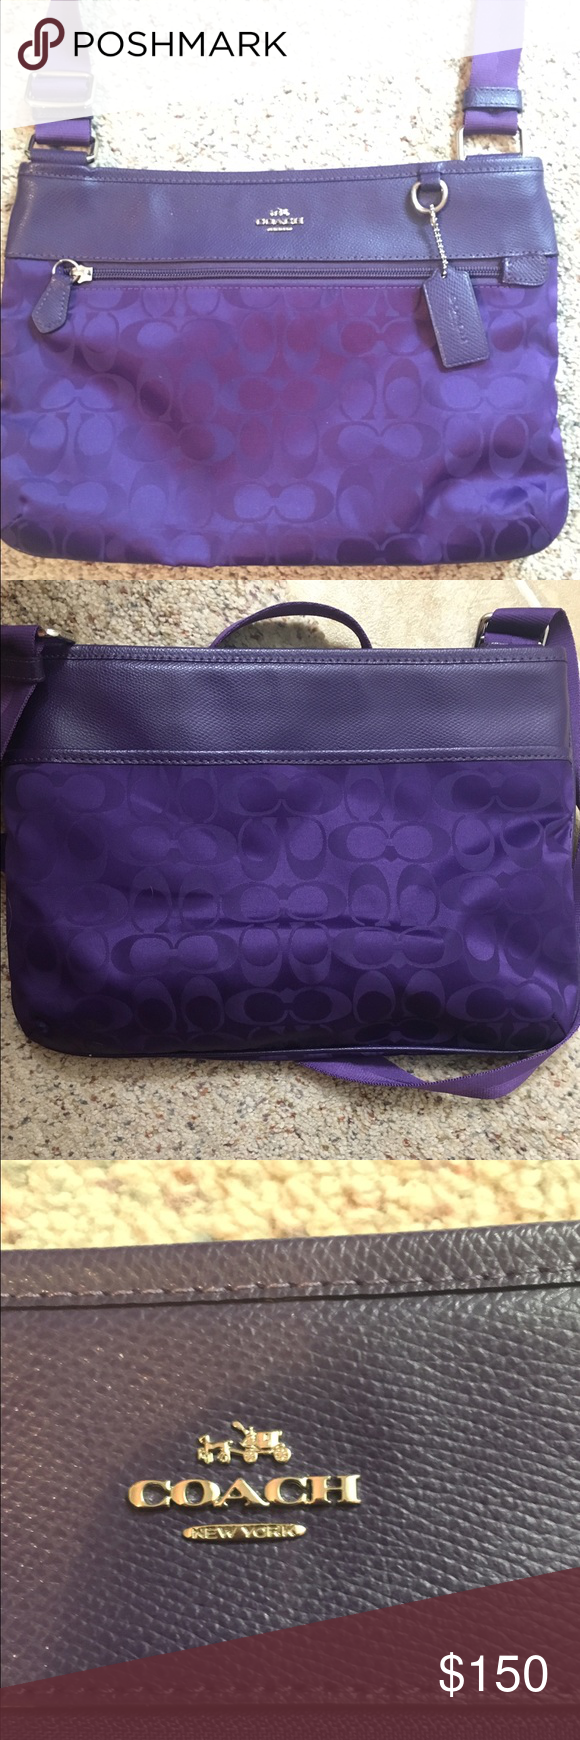 Beautiful Dark Purple Satchel Coach Purse Perfect condition. I bought this purse but ended up never using it. Please make offers. I'm willing to negotiate!  Coach Bags Satchels